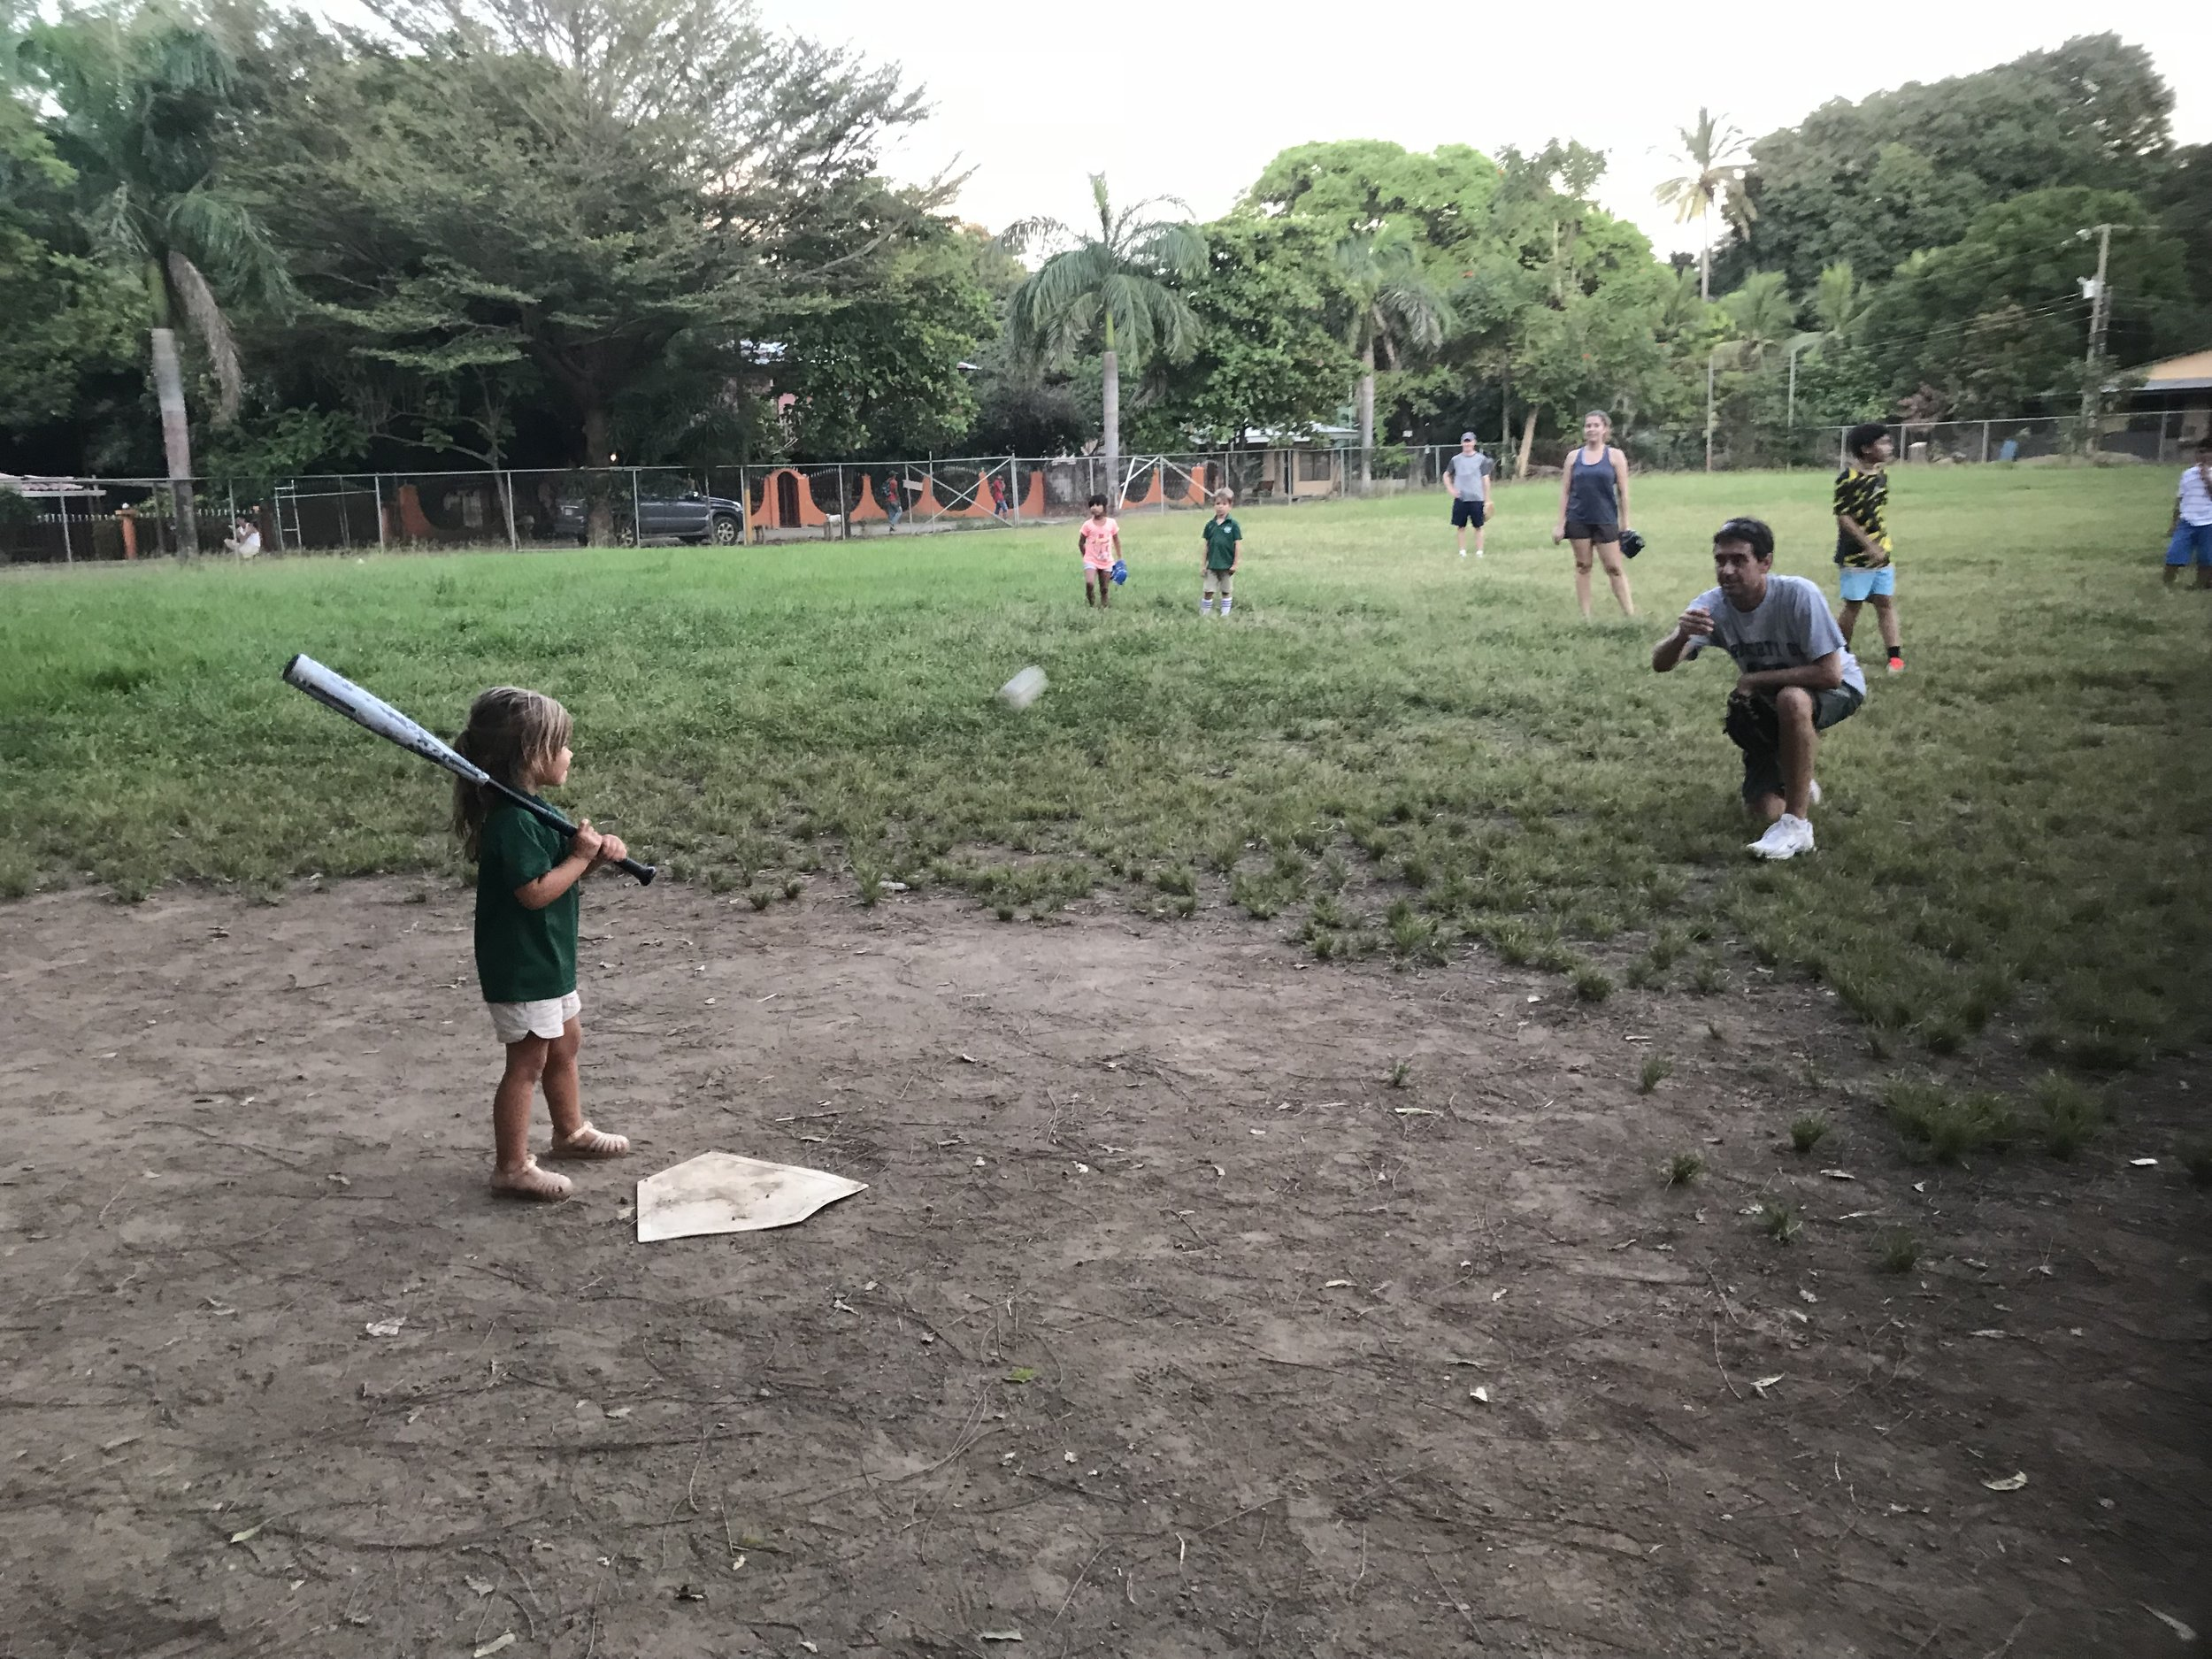 SKIPPING TEES, HELMETS, CLEATS AND A SMALLER BAT. STARTING OFF IN THE BIG LEAGUES.